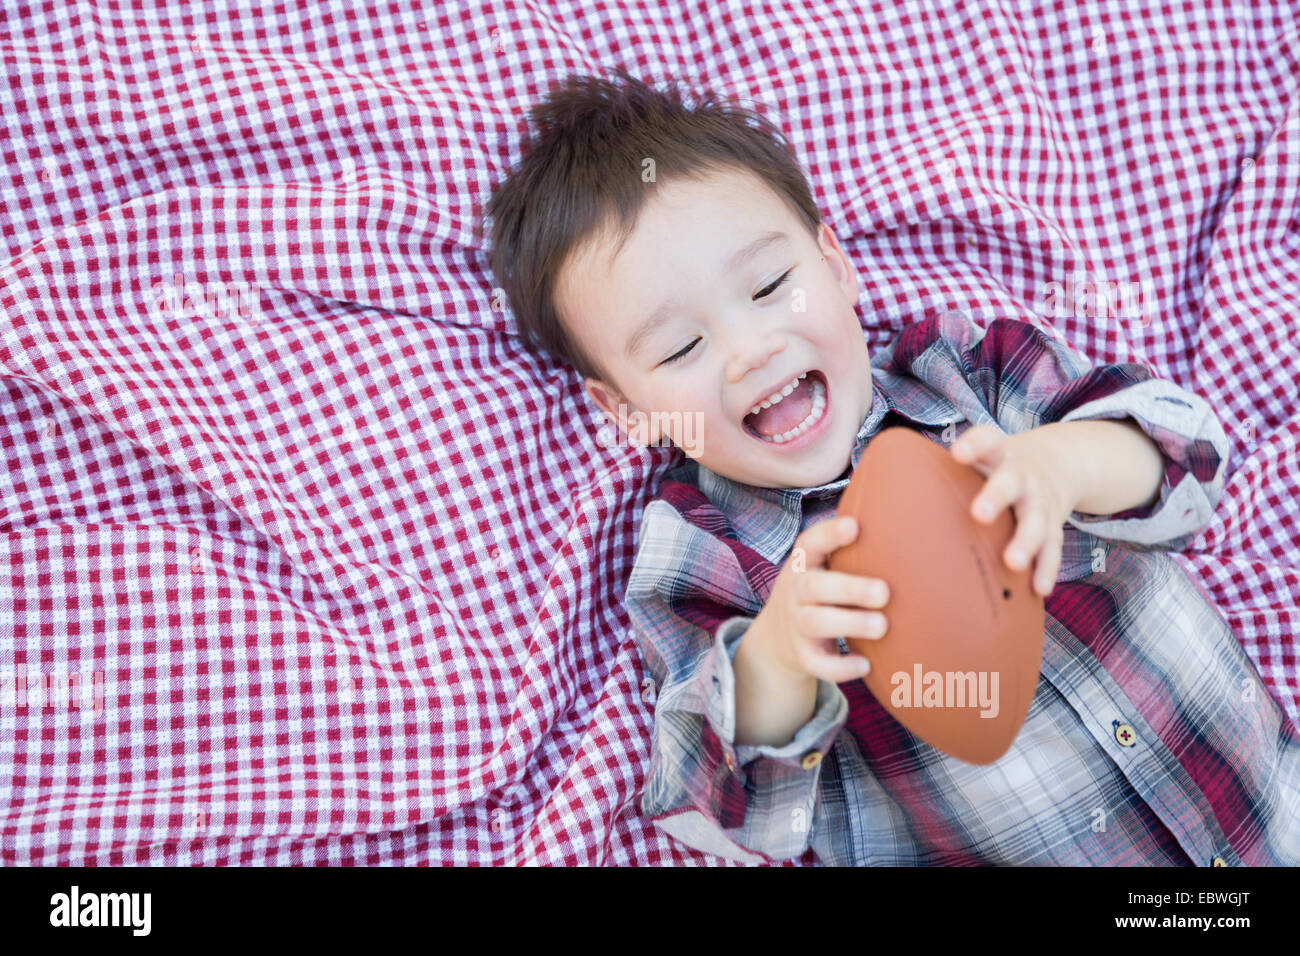 Cute Young Mixed Race Boy Playing With Football Outside On Picnic Blanket. Stock Photo